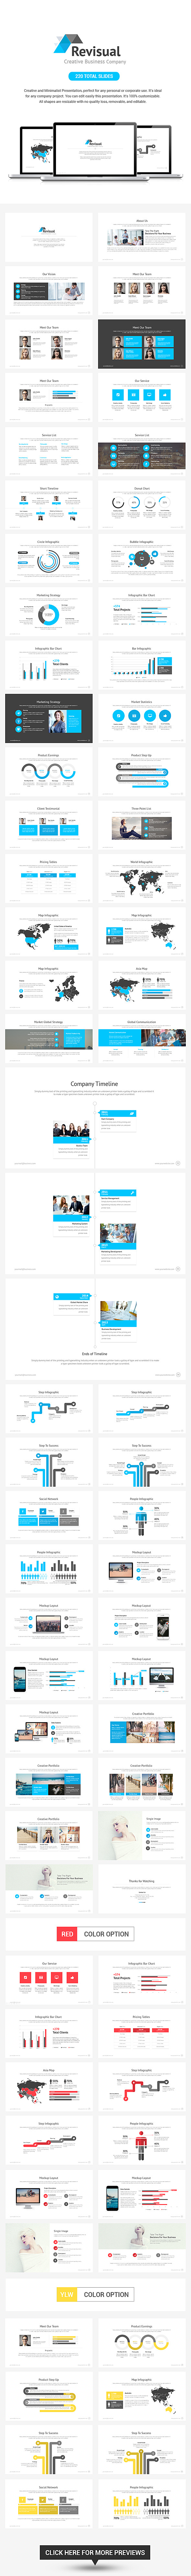 GraphicRiver Revisual Powerpoint Template 9537682